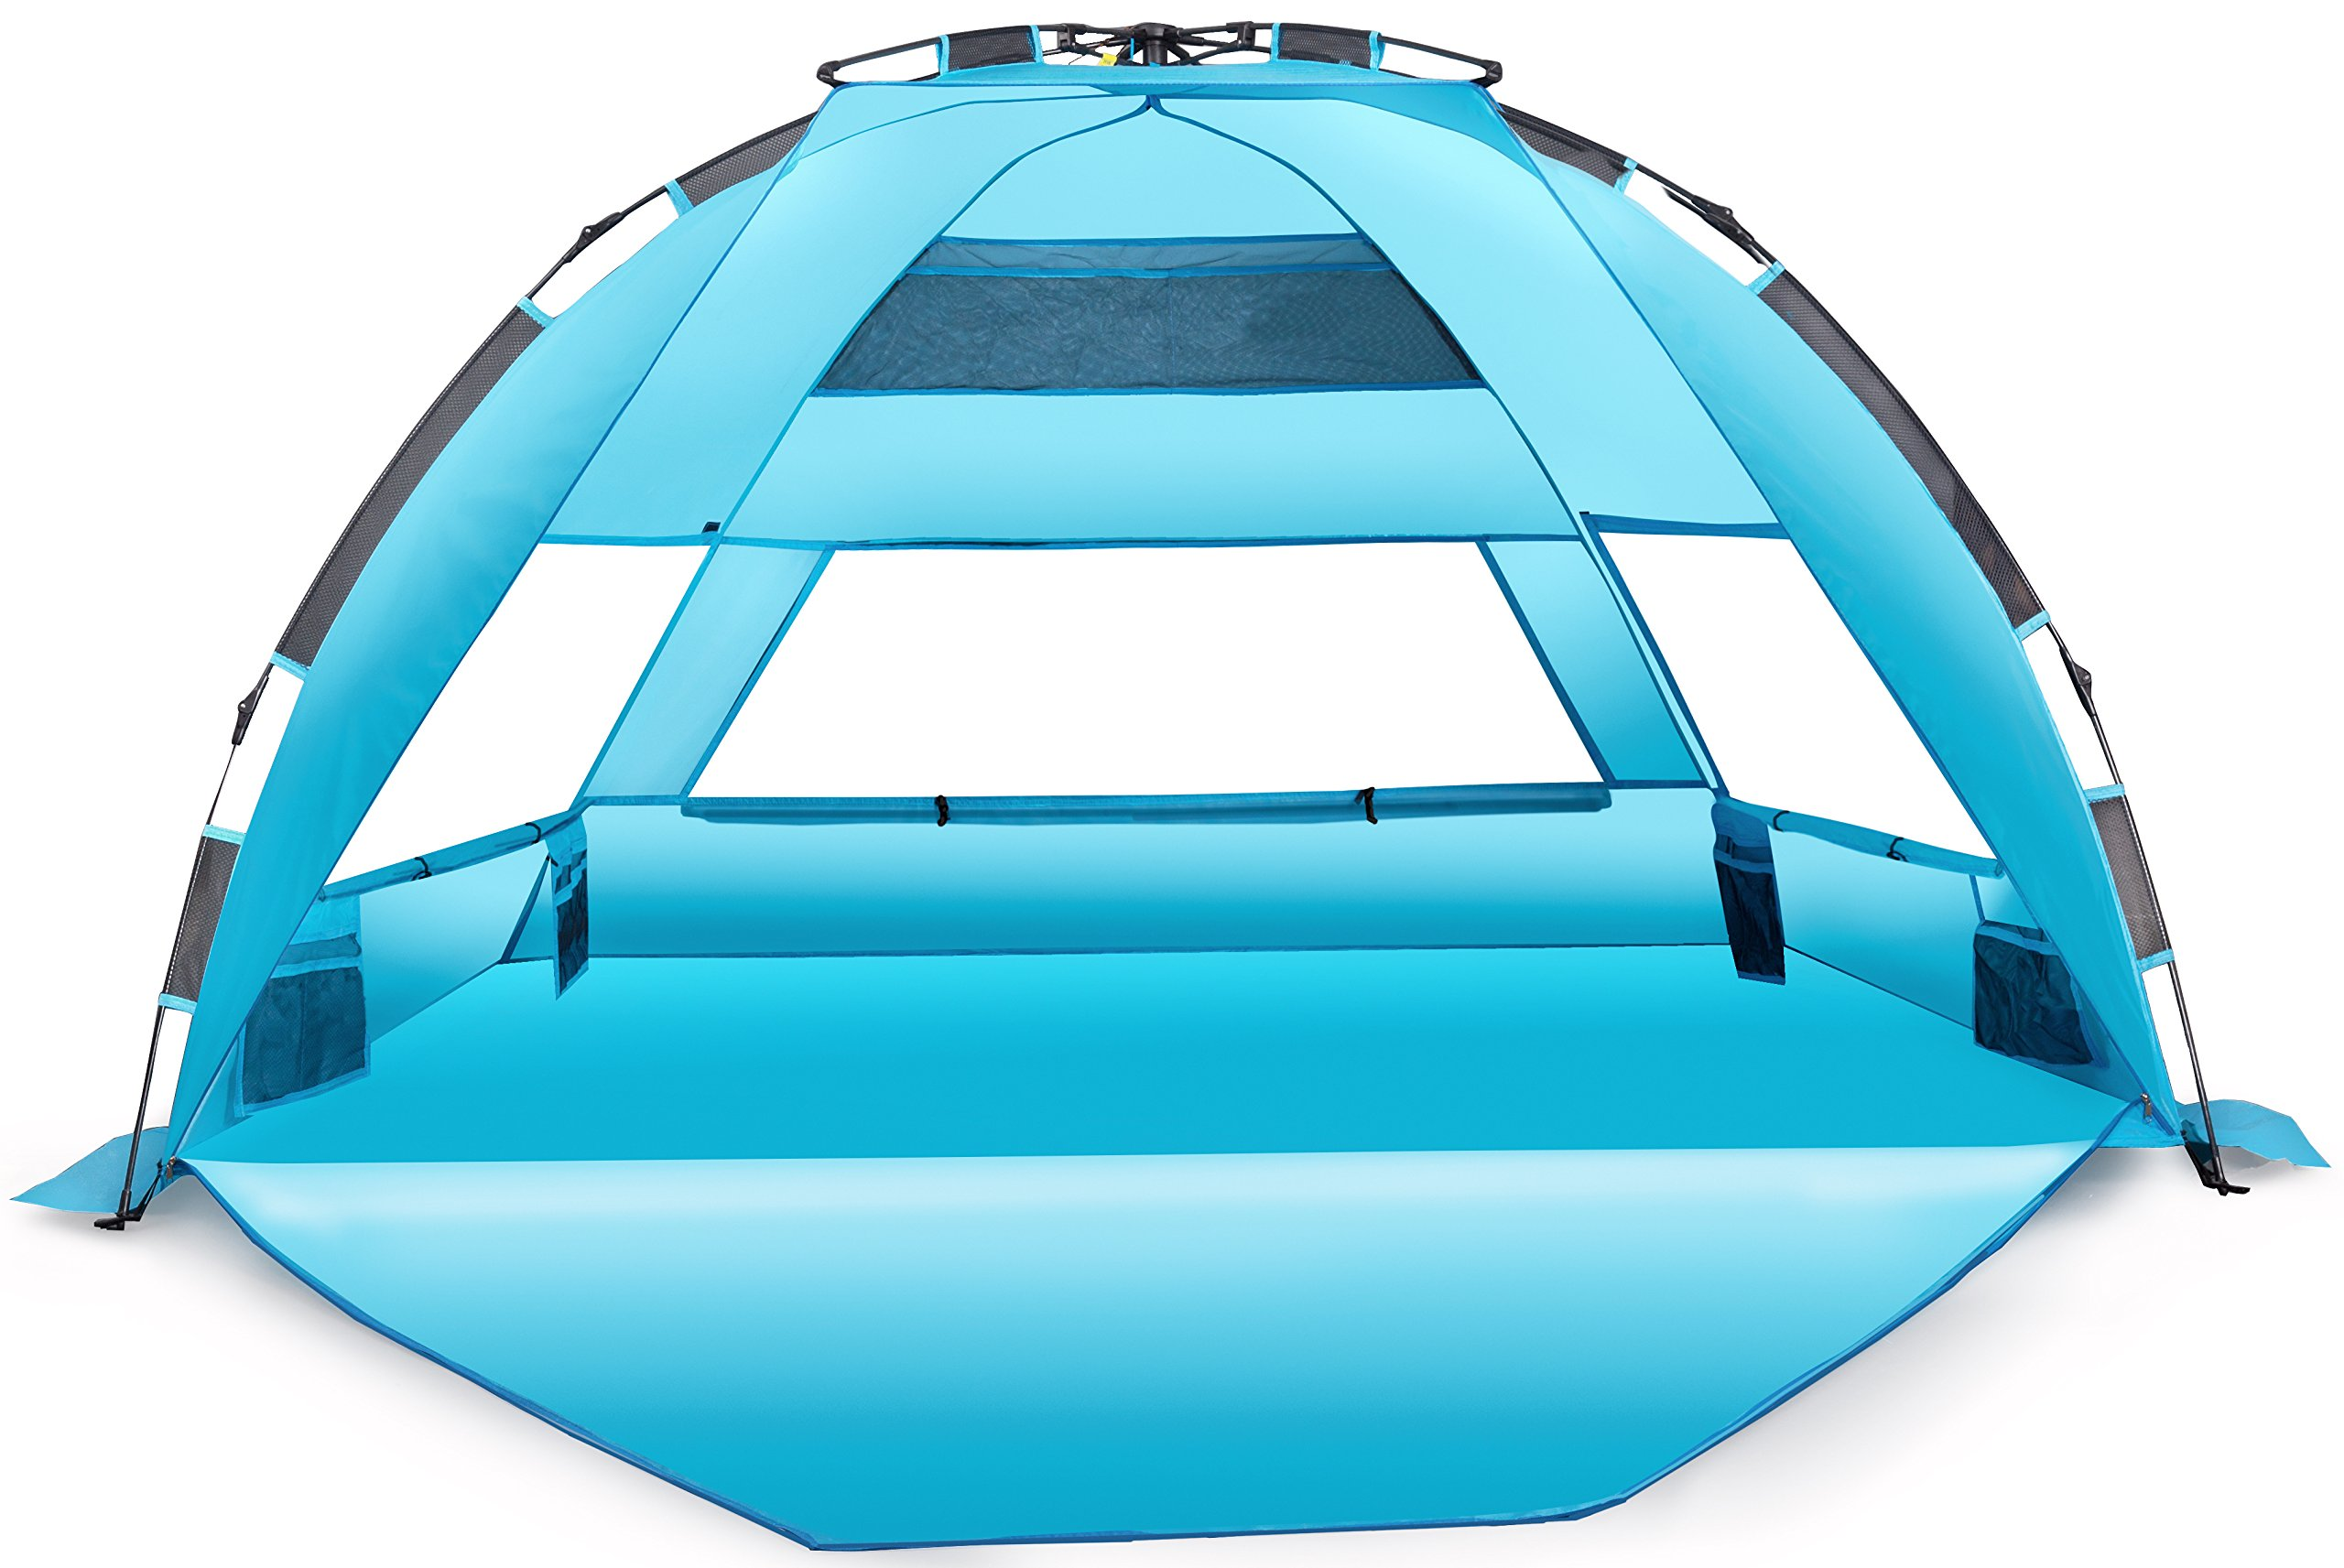 Arcshell Premium Extra Large Pop Up Beach Tent UPF 50+ by Arcshell